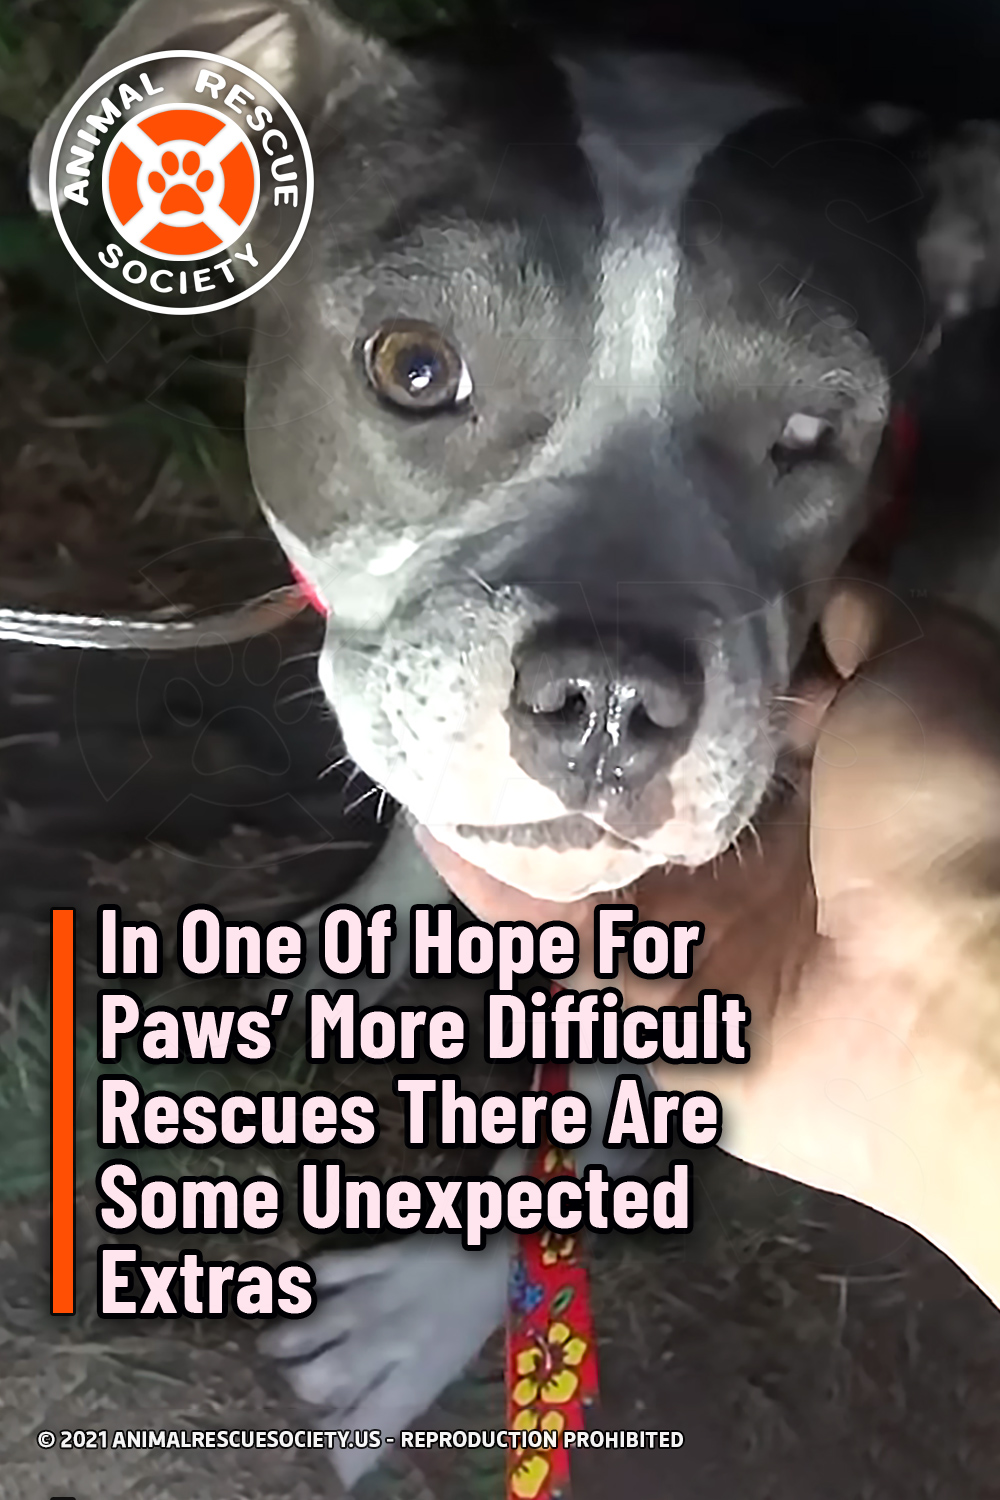 In One Of Hope For Paws' More Difficult Rescues There Are Some Unexpected Extras